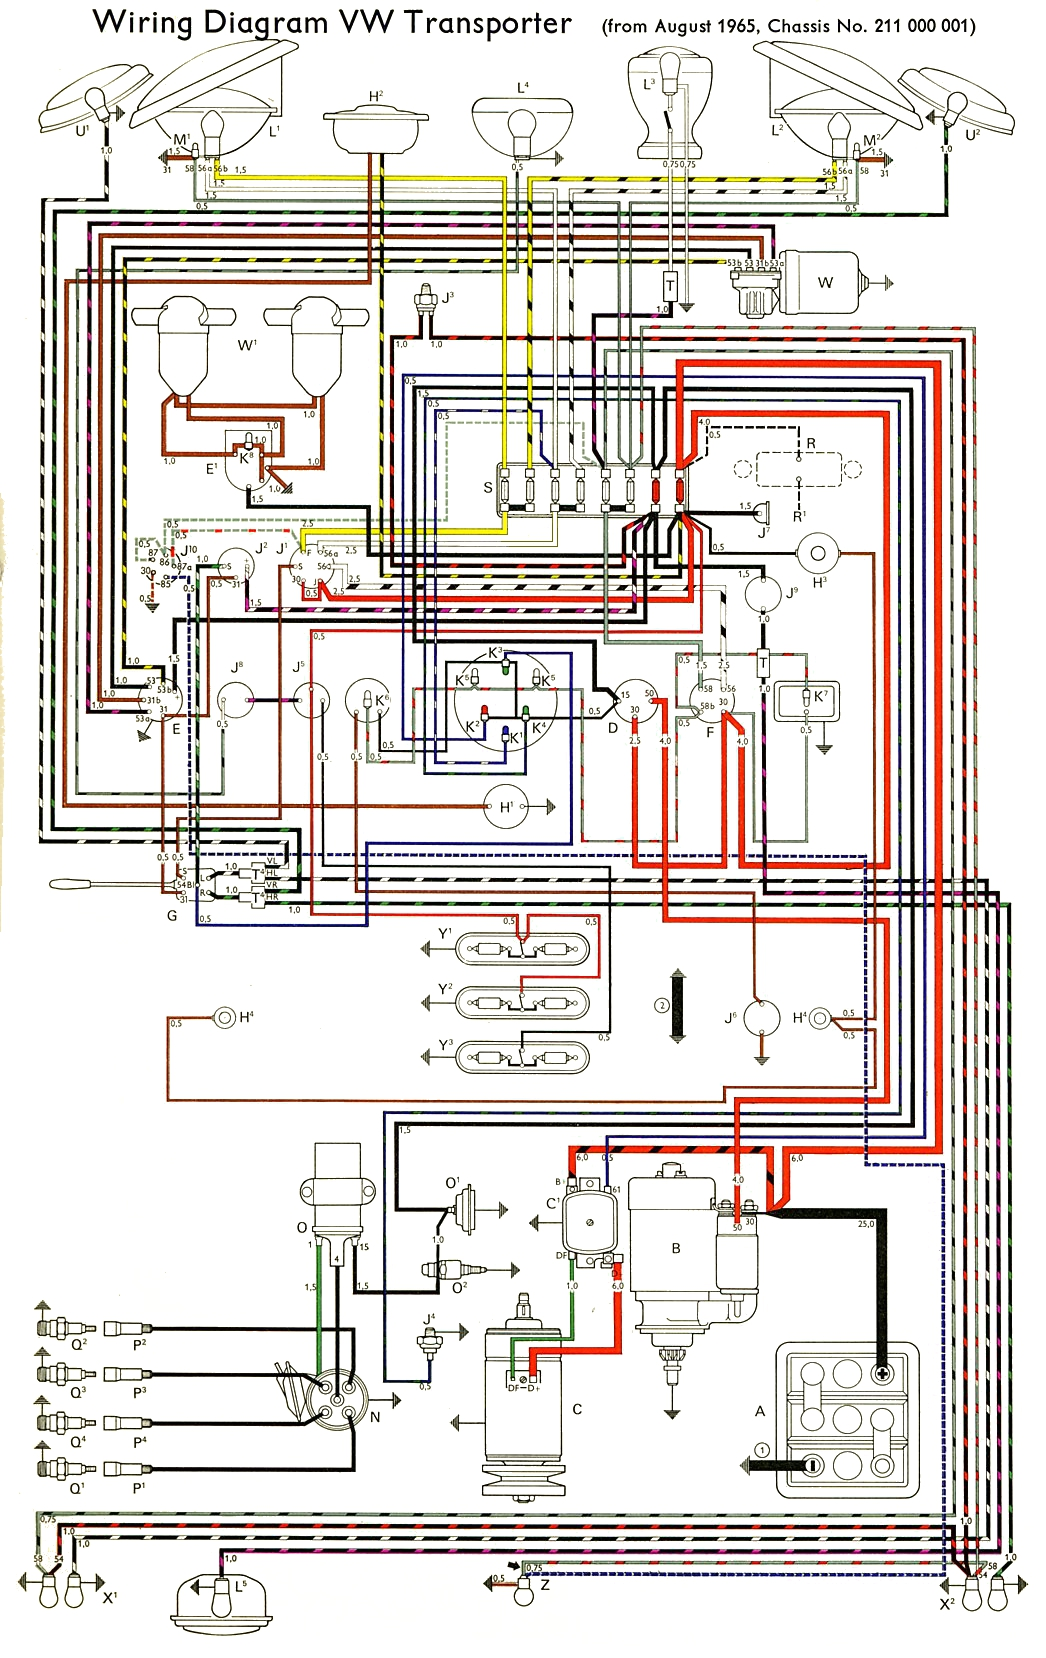 1977 Vw T3 Engine Diagram Opinions About Wiring Elektro Motor Triumph Spitfire Free Image For User Manual Download Type 2